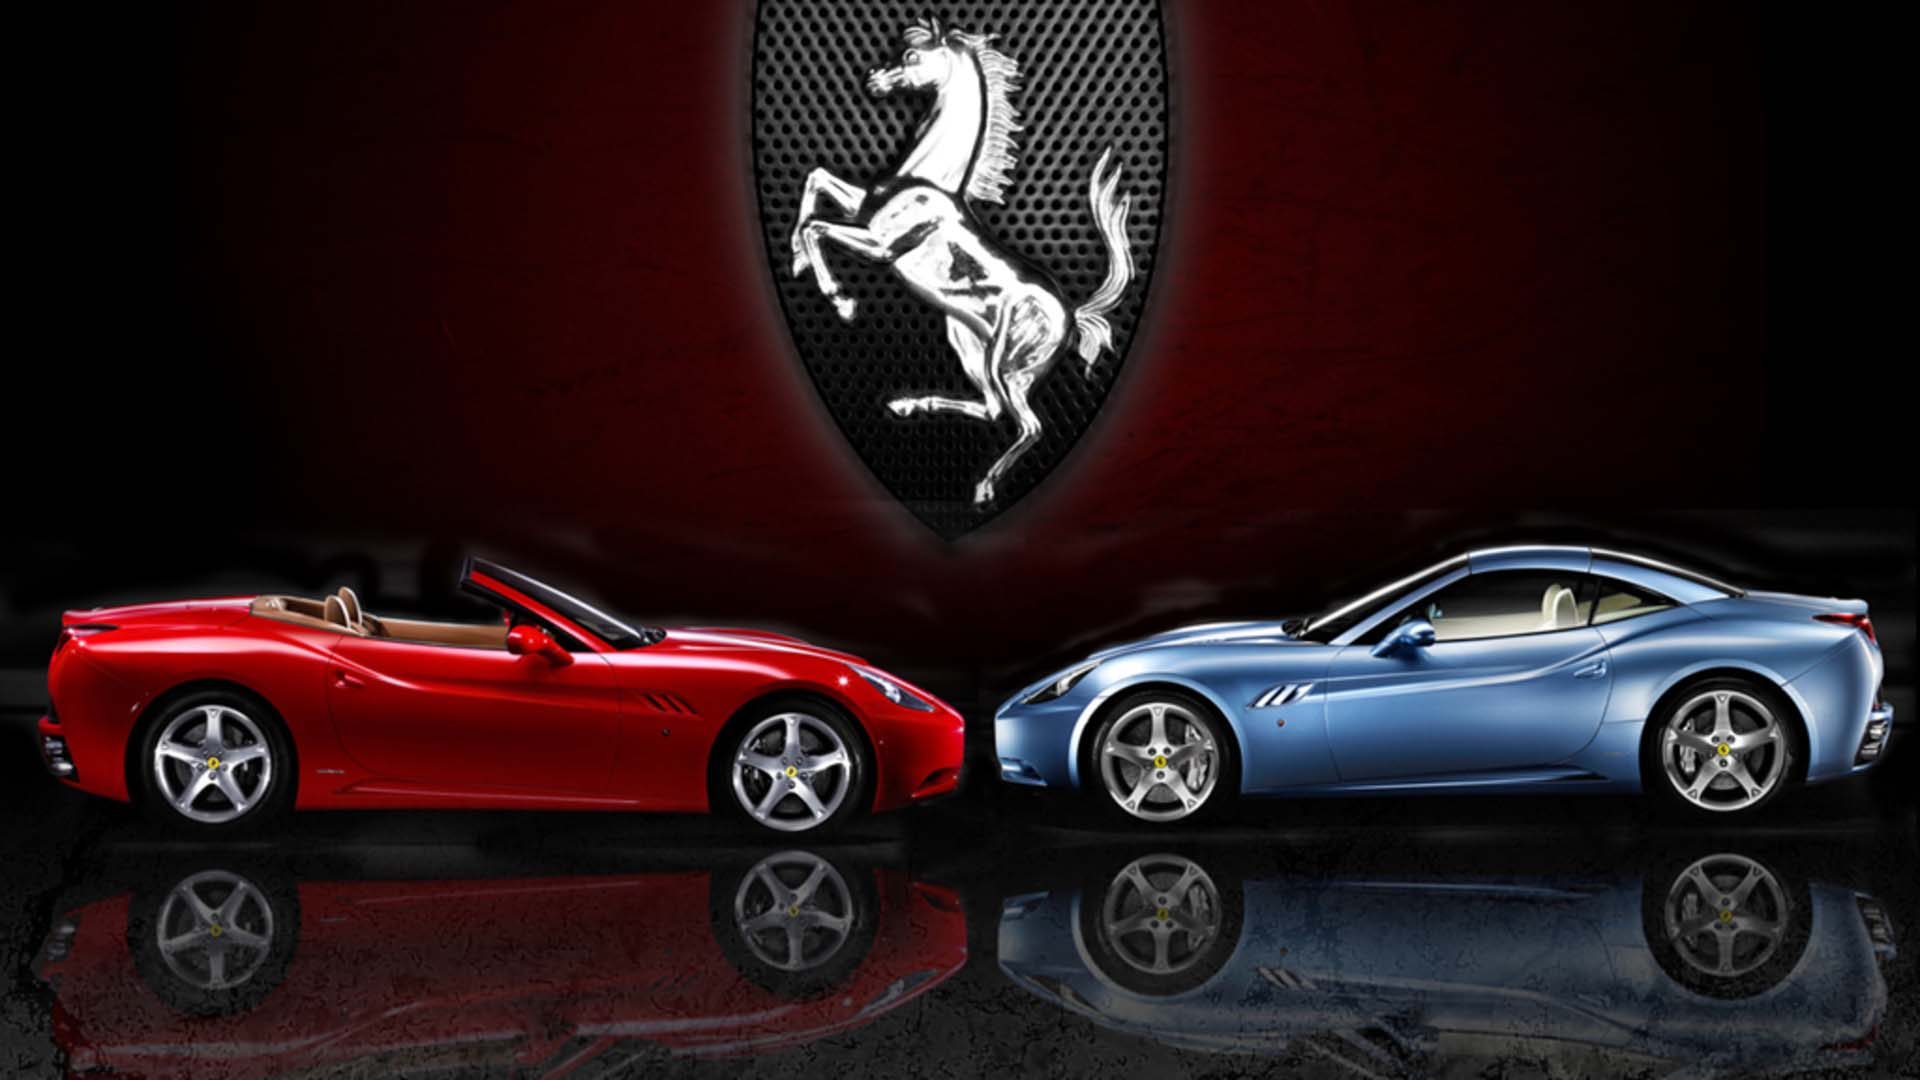 Awesome 3d Wallpapers Hd 42 Hd Ferrari Wallpapers For Free Download